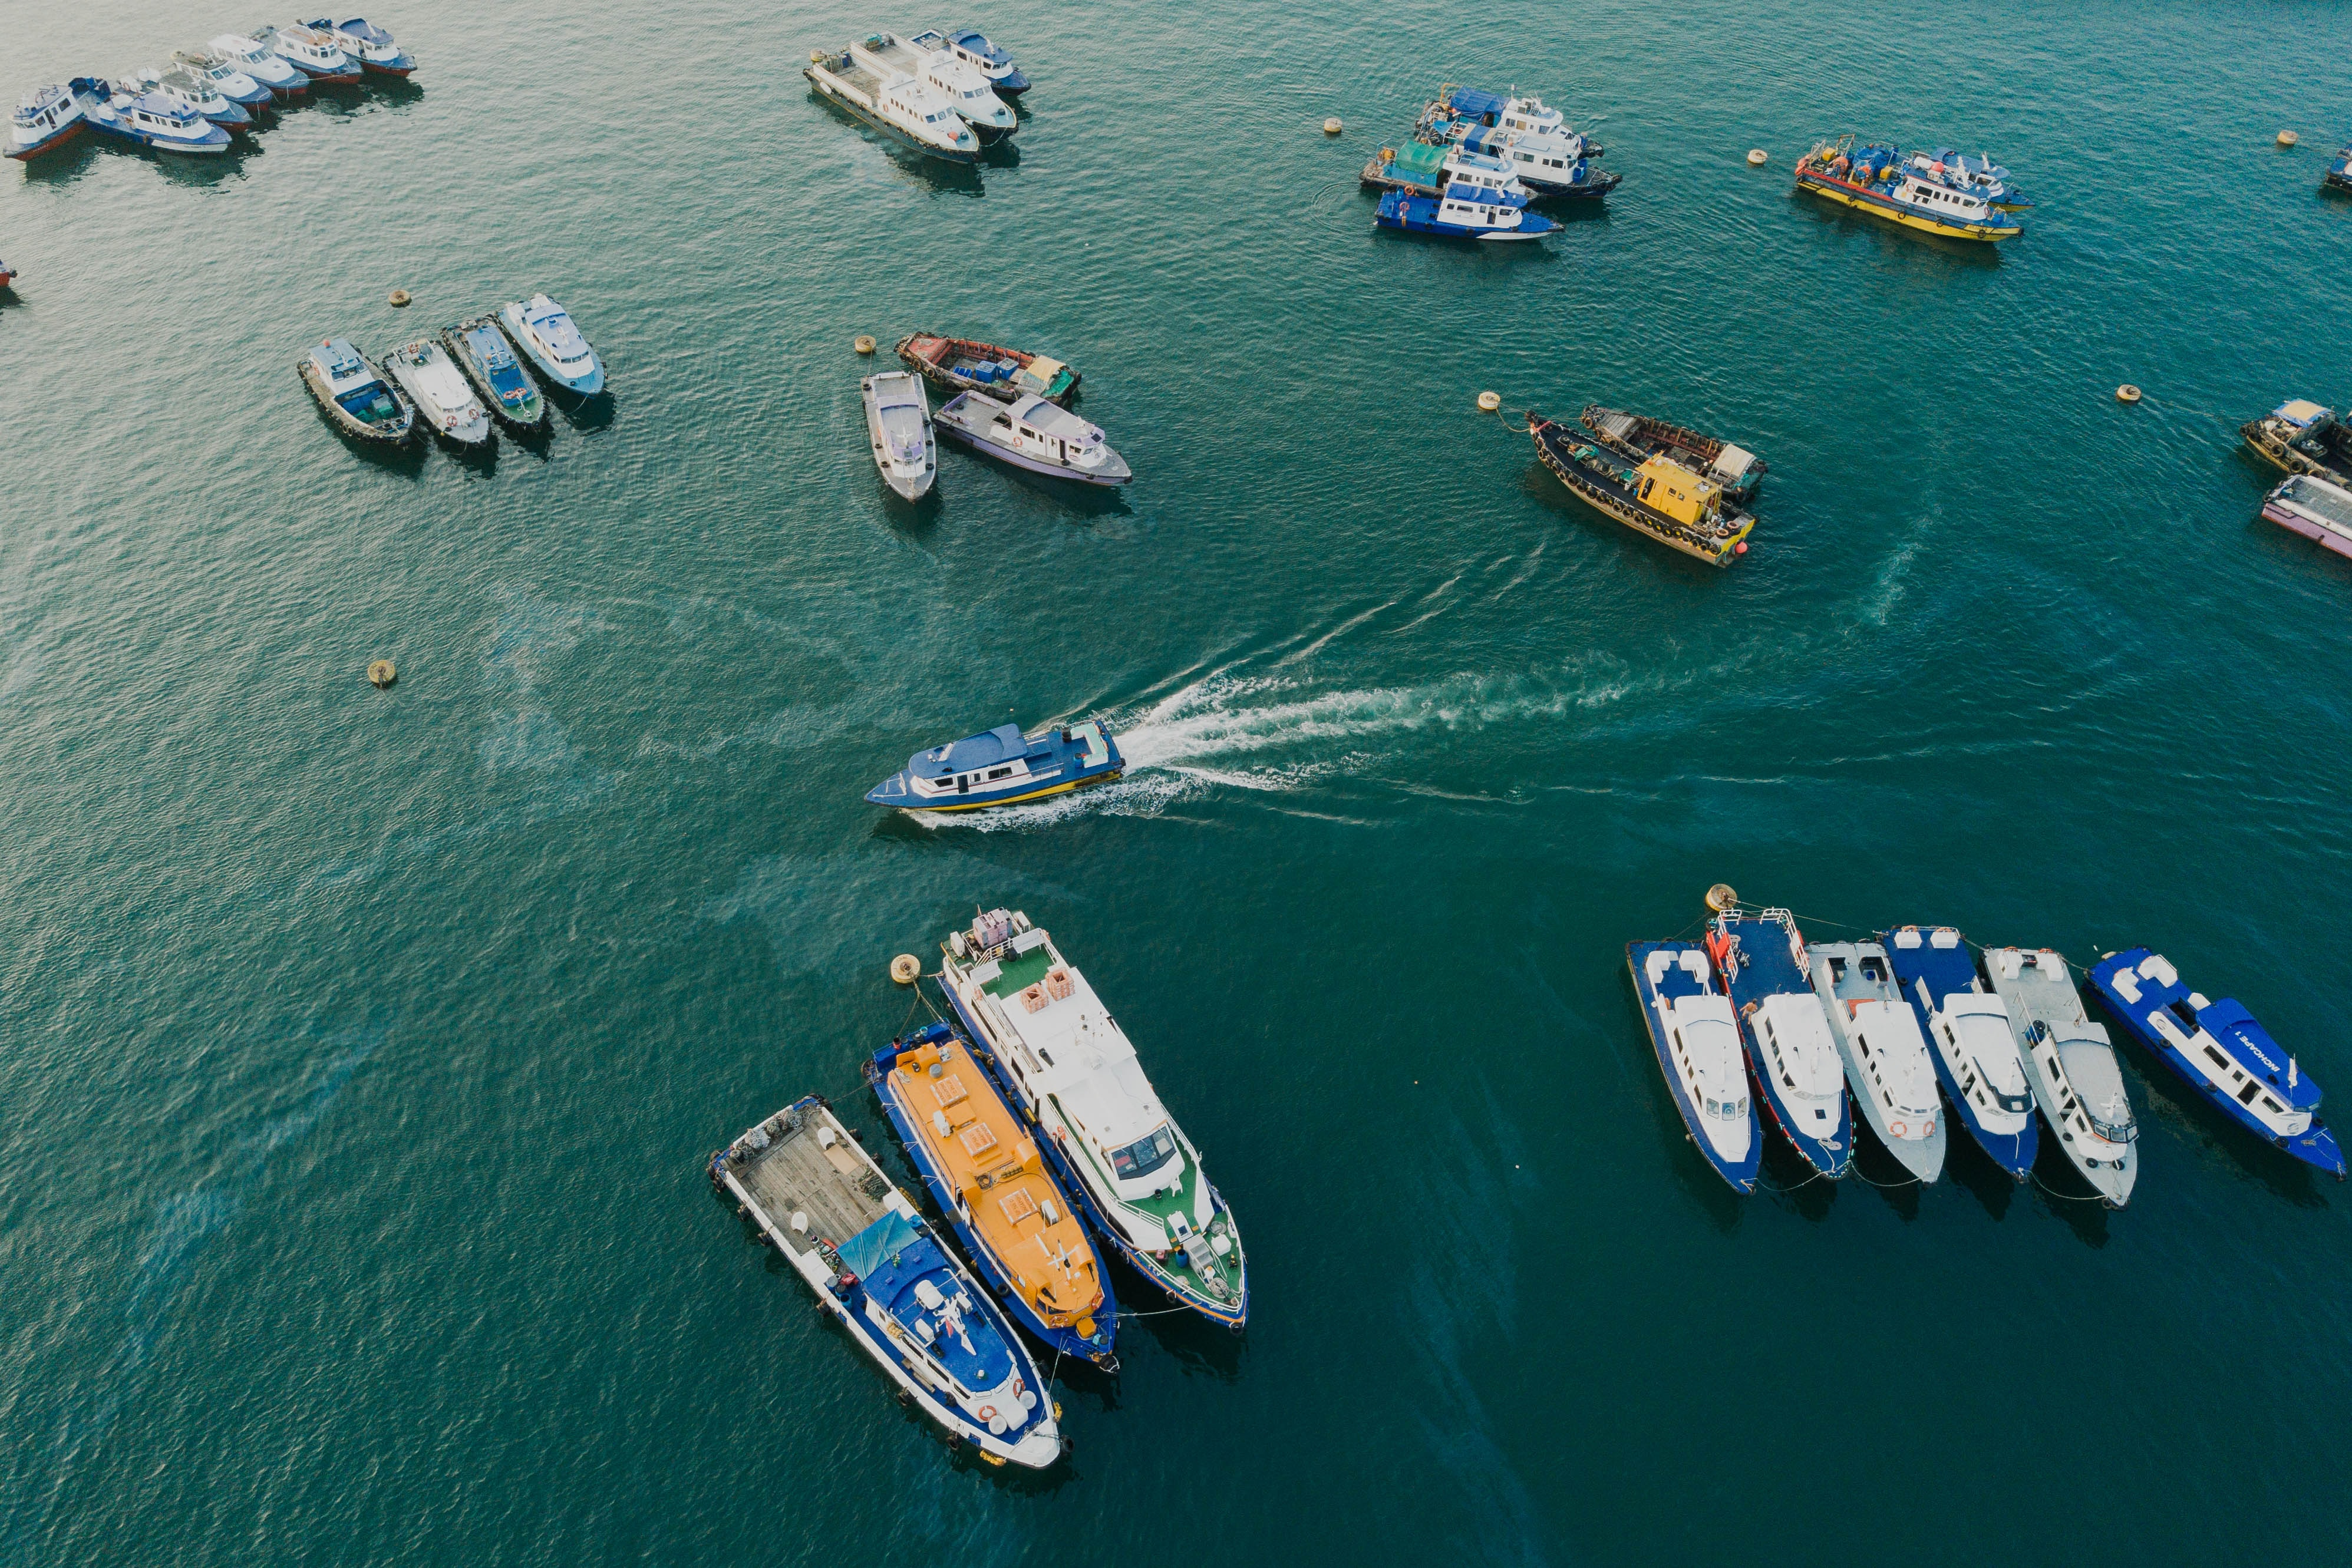 aerial view of yacht lot on body of water